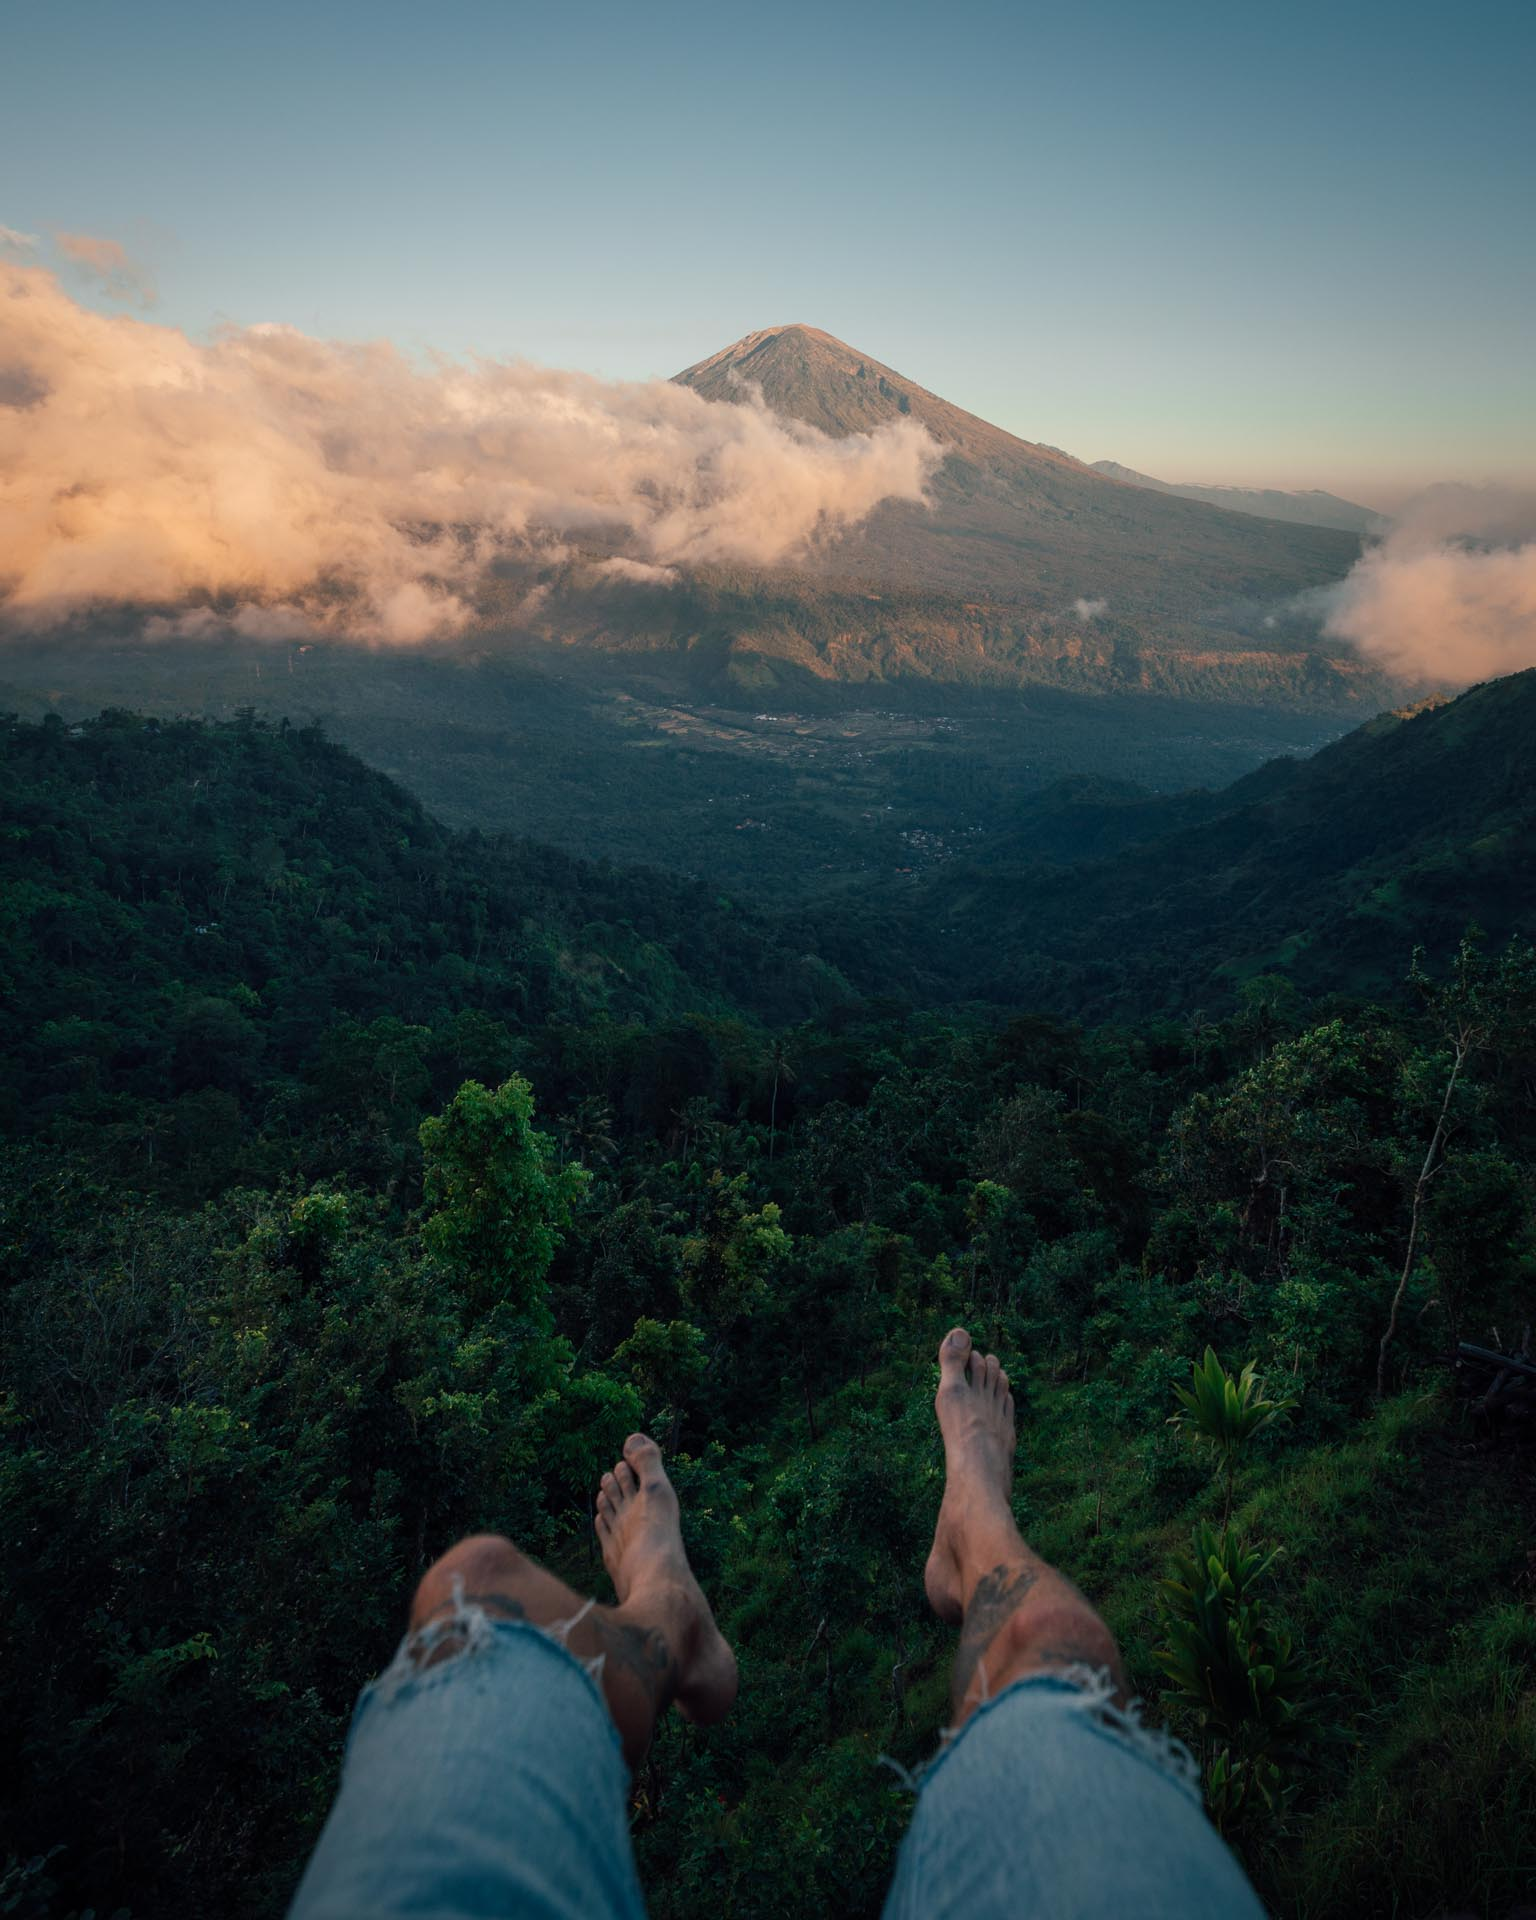 lahangan sweet, lahangan sweet bali, lahangan sweet viewpoint